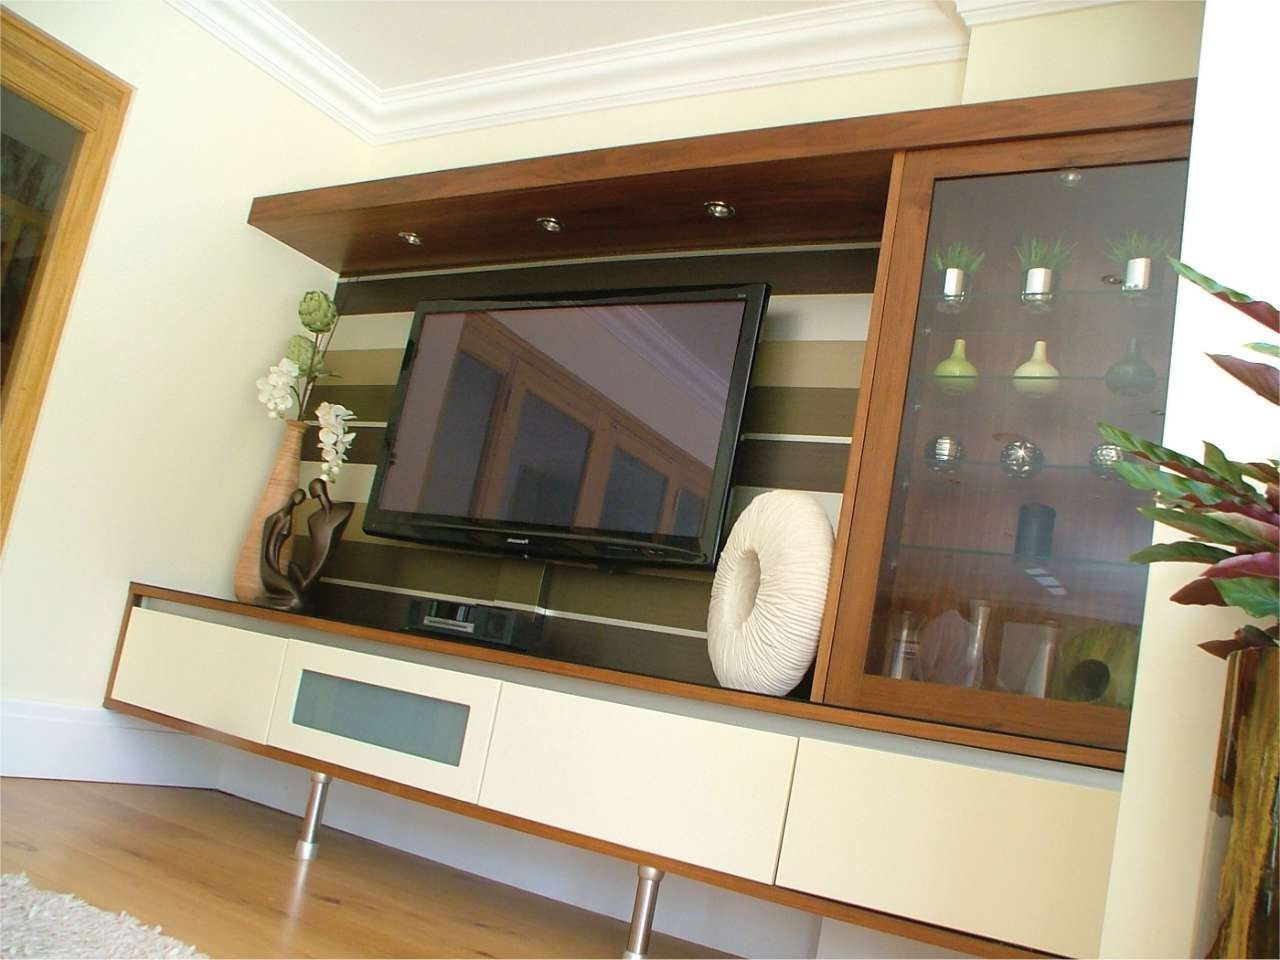 Bespoke Tv Cabinet | Choice Interiors In Bespoke Tv Cabinets (View 2 of 20)